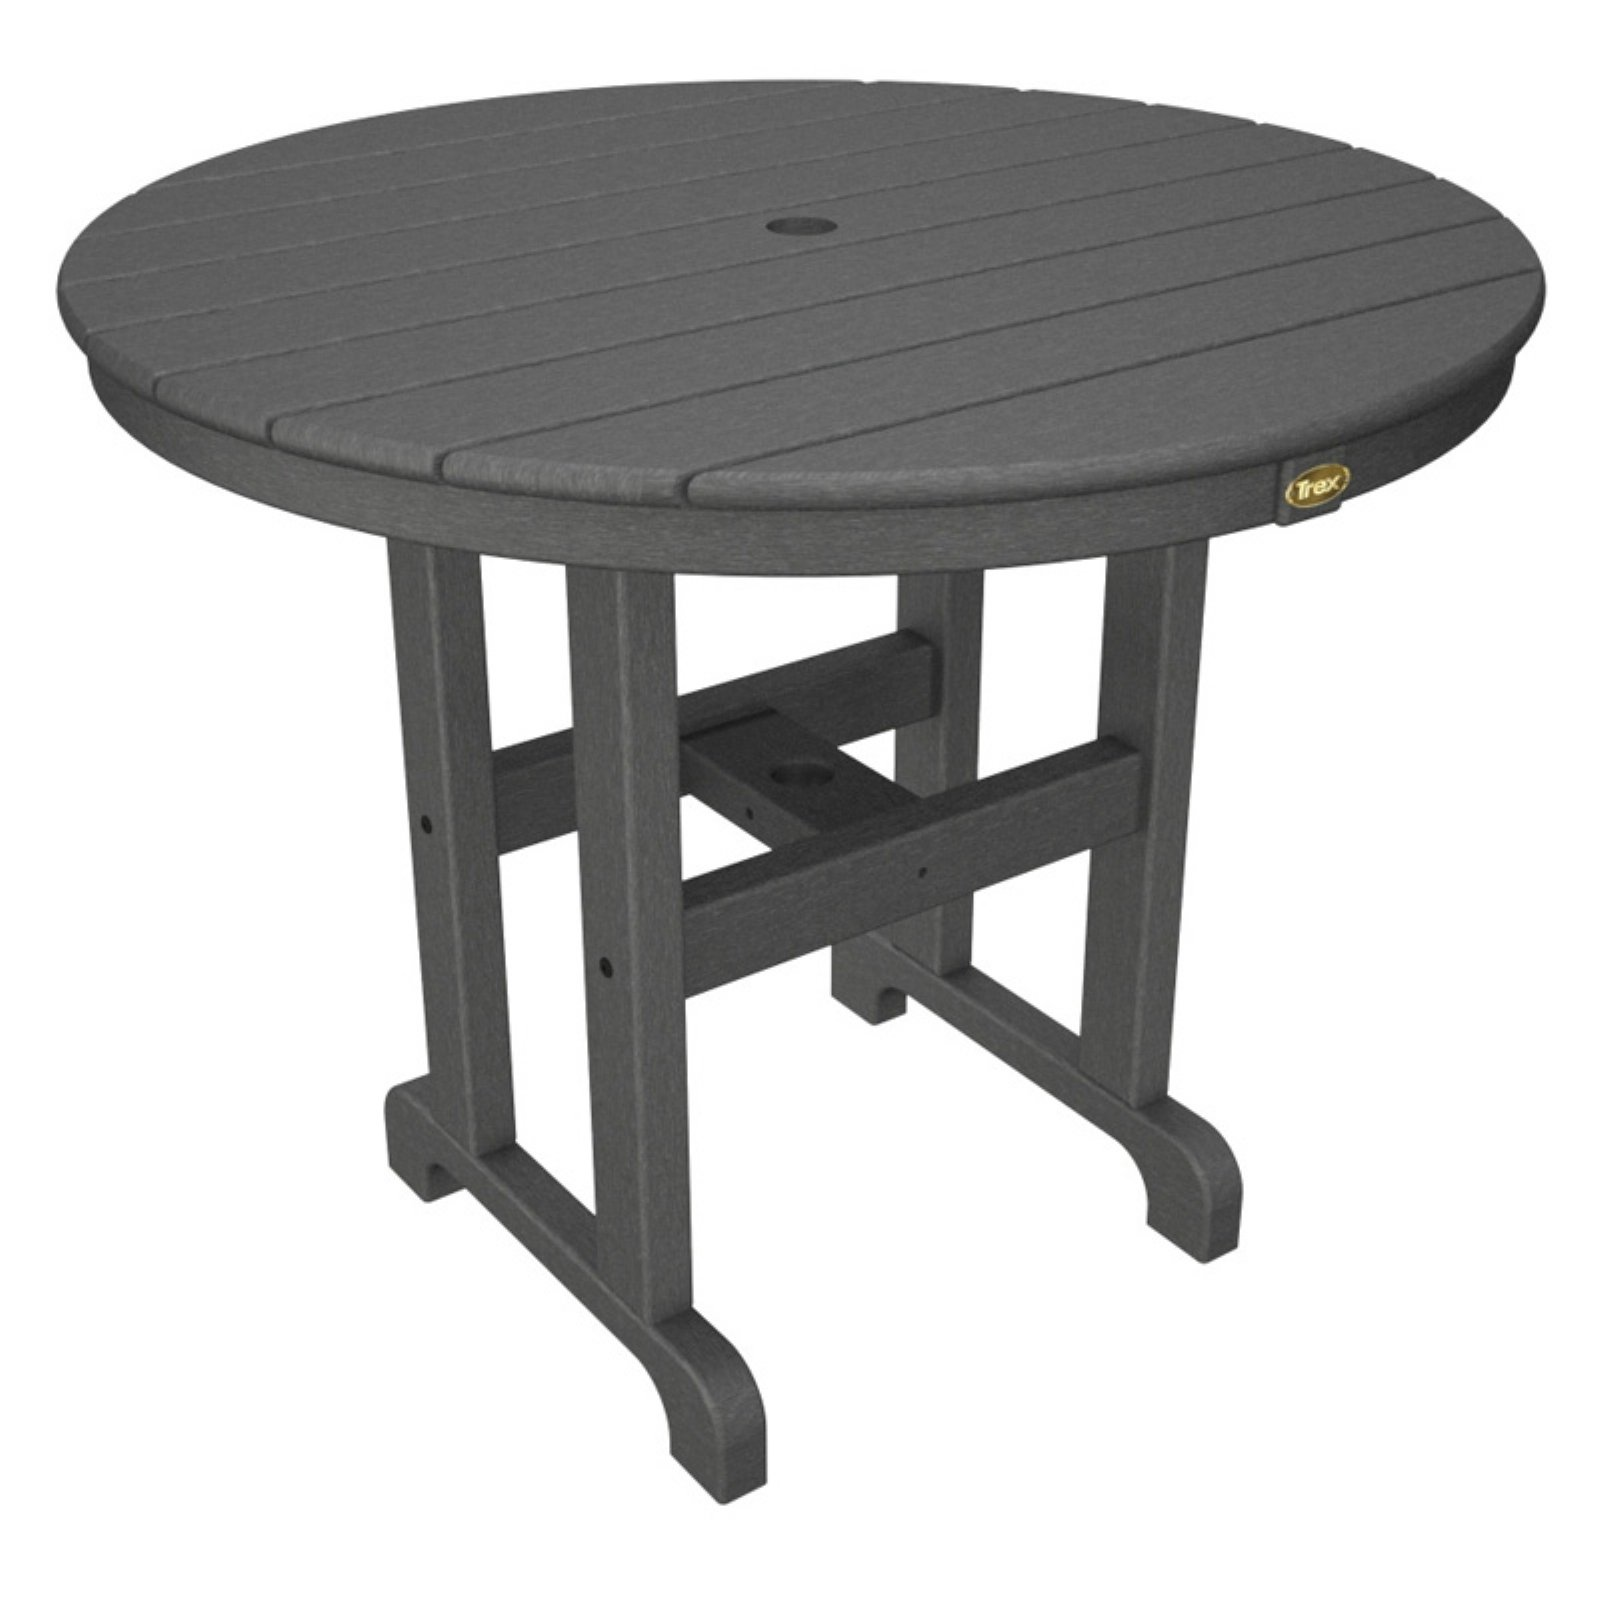 Round Patio Furniture Trex Outdoor Furniture Recycled Plastic Monterey Bay Round Patio Dining Table